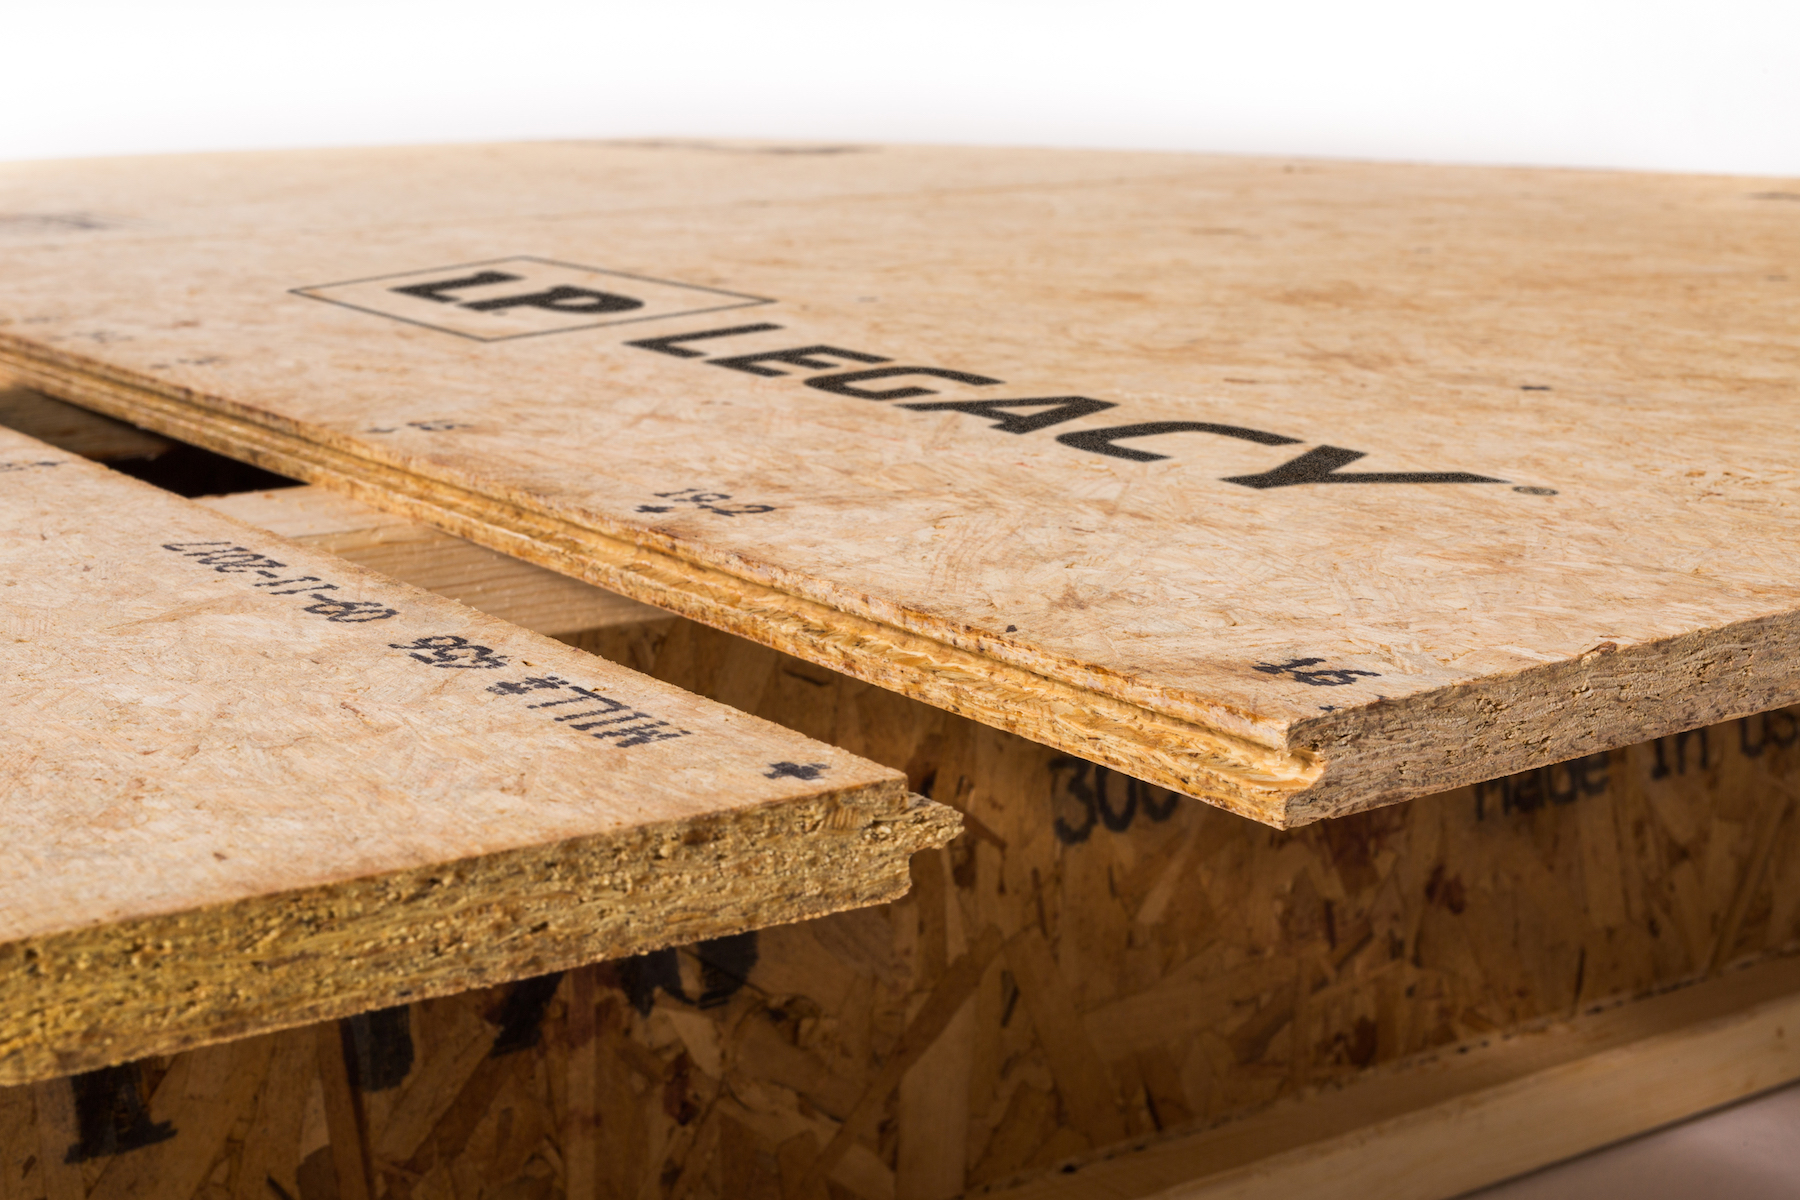 Using a premium sub-floor such as LP Legacy® as part of a well-planned system can help builders meet buyer expectations for floor performance.